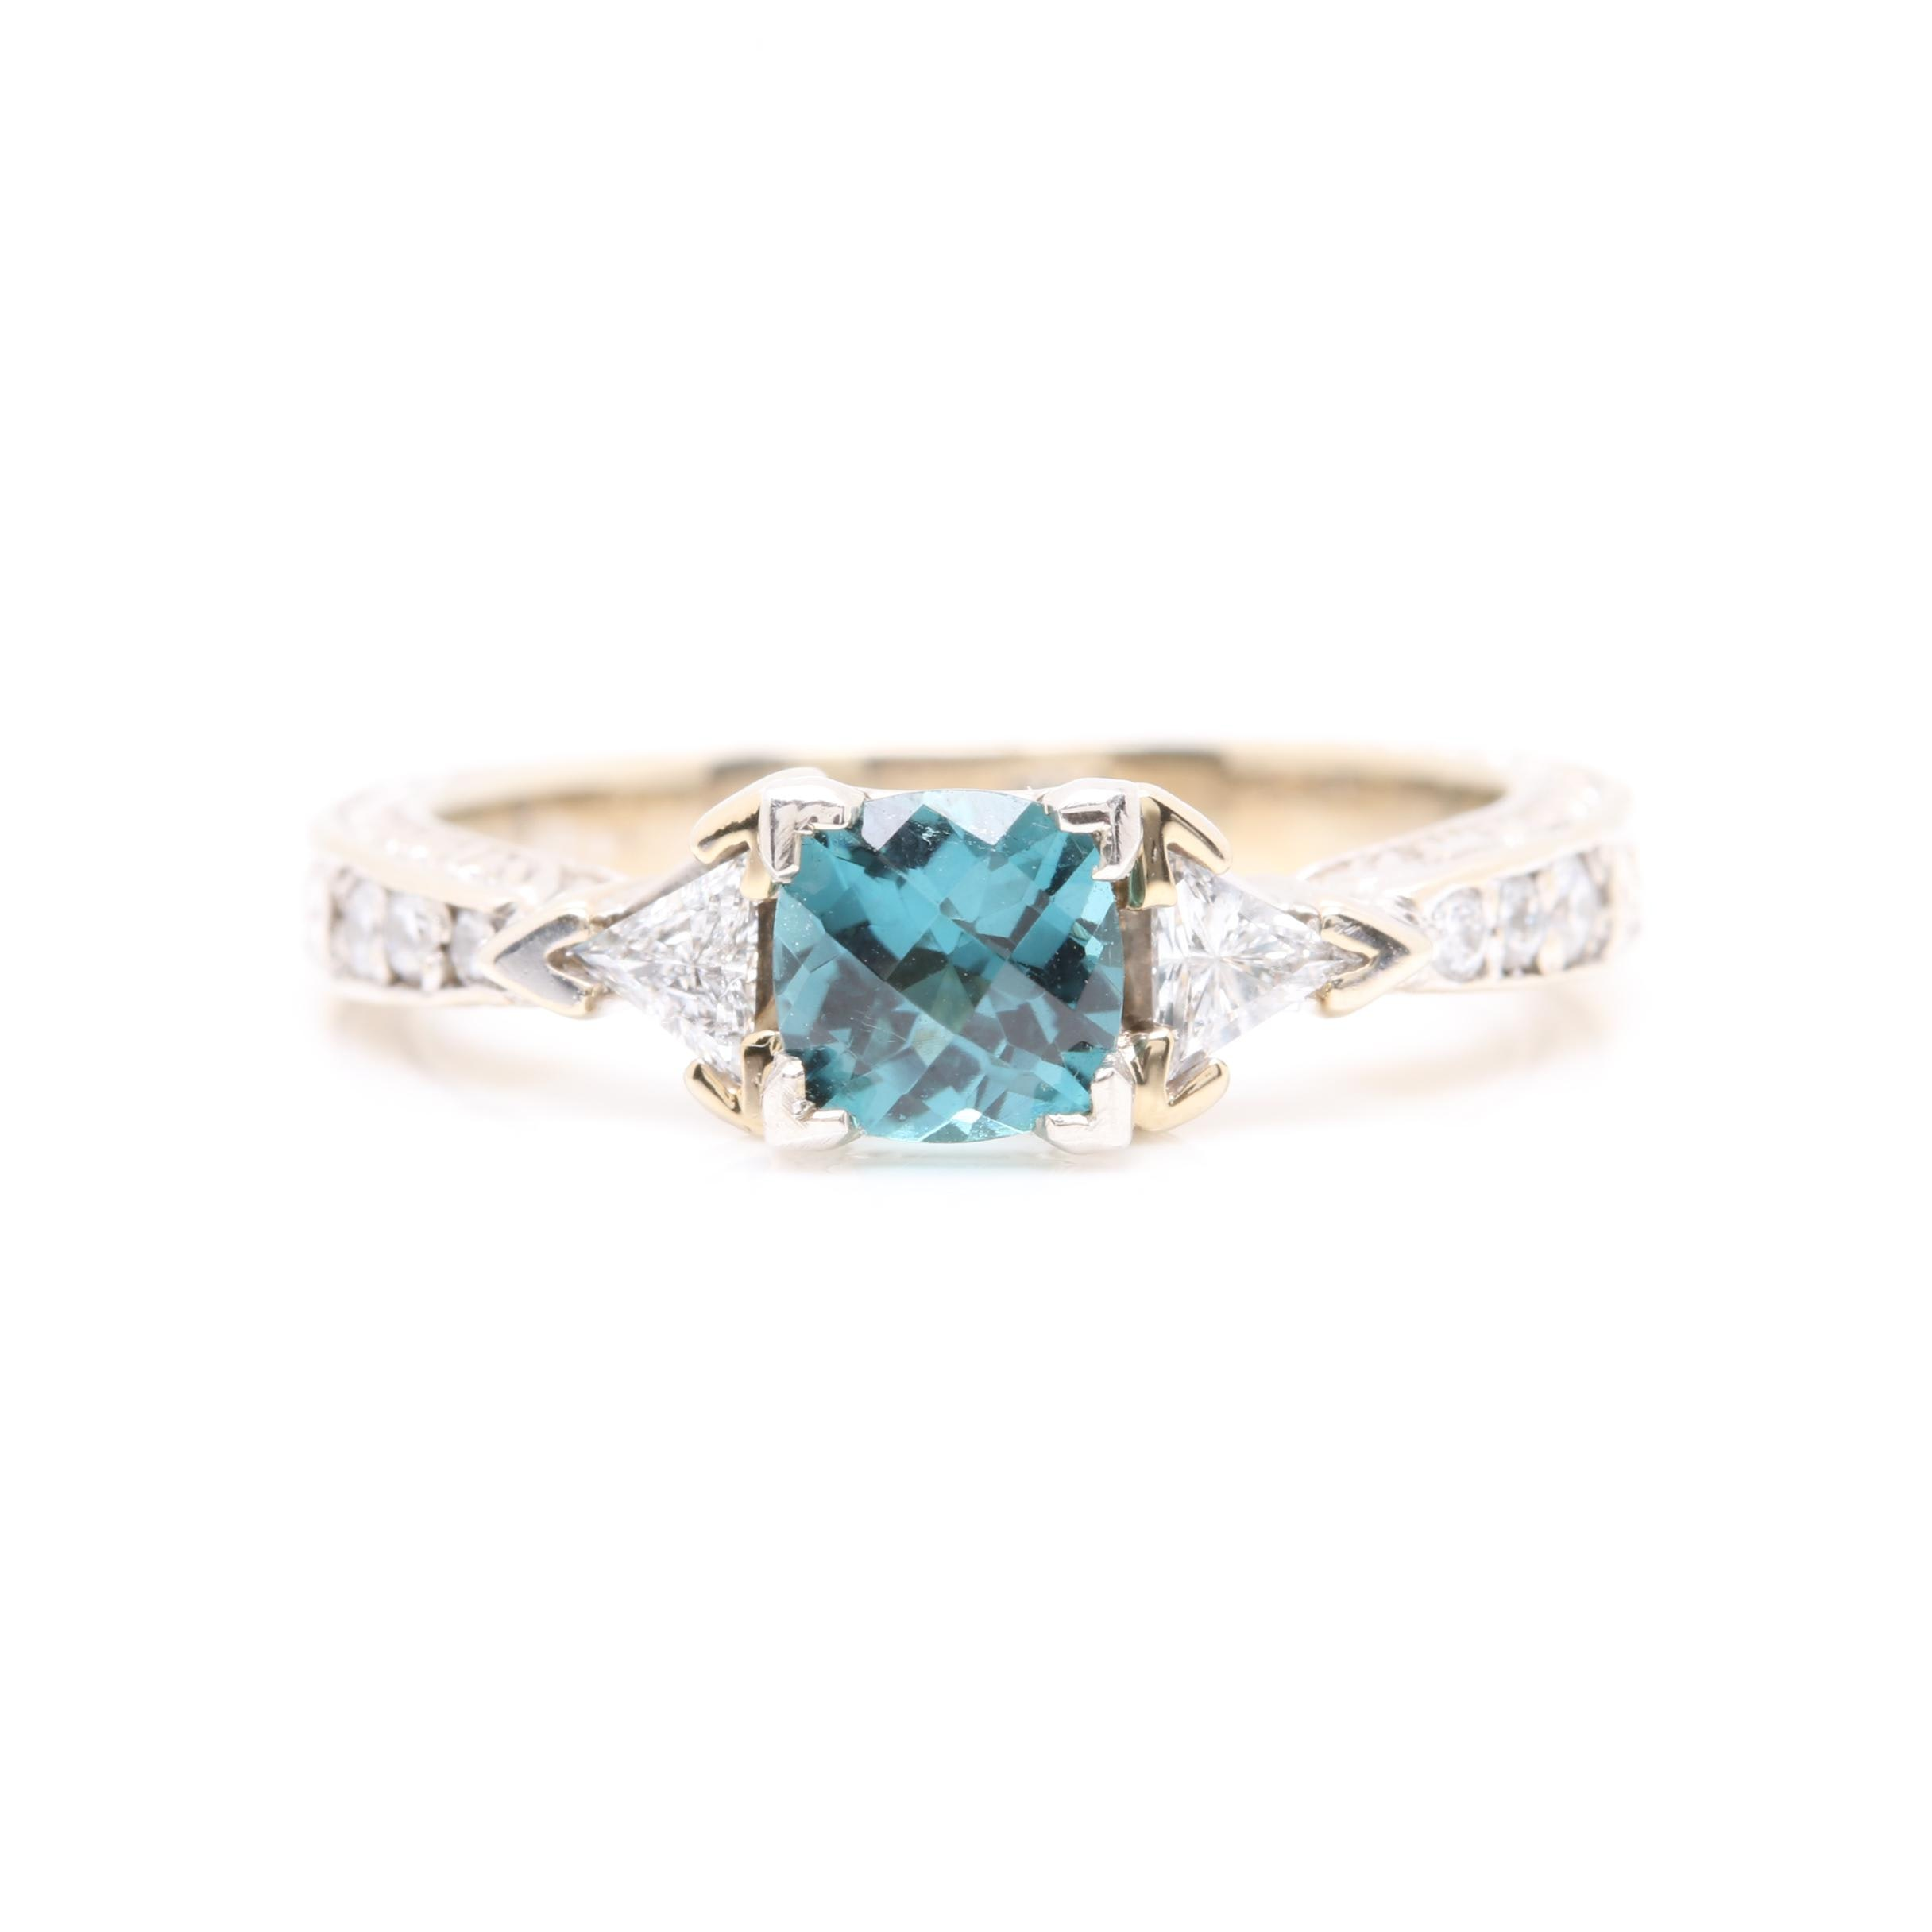 14K White Gold and Platinum Blue Tourmaline and Diamond Ring